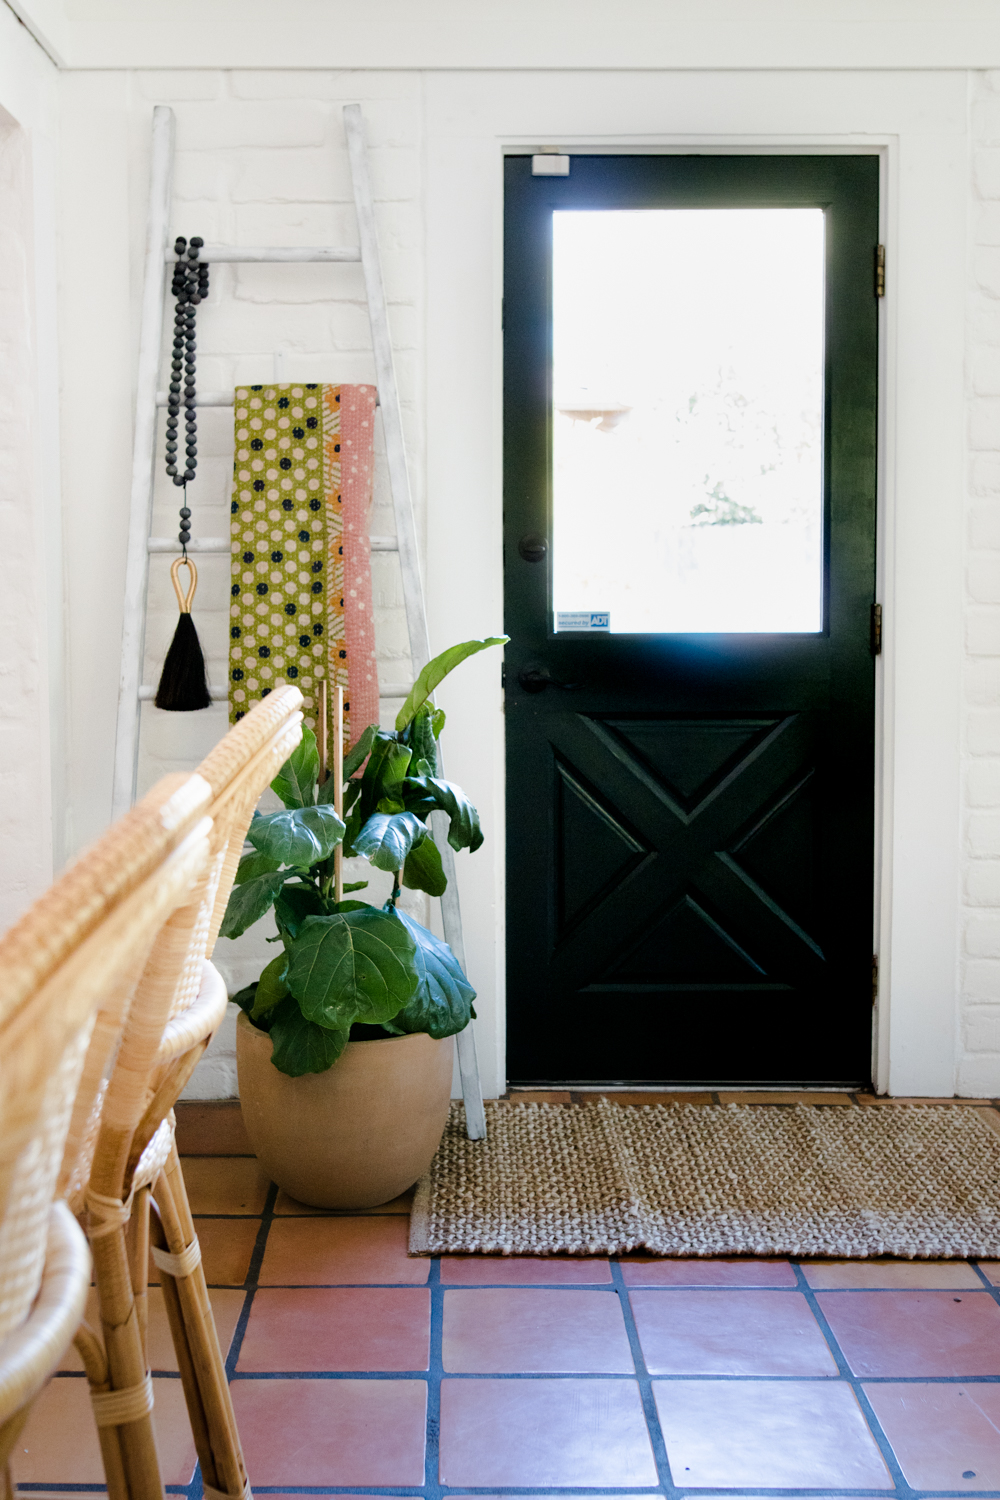 10 Entryway Plants That'll Make You Happy to Be Home